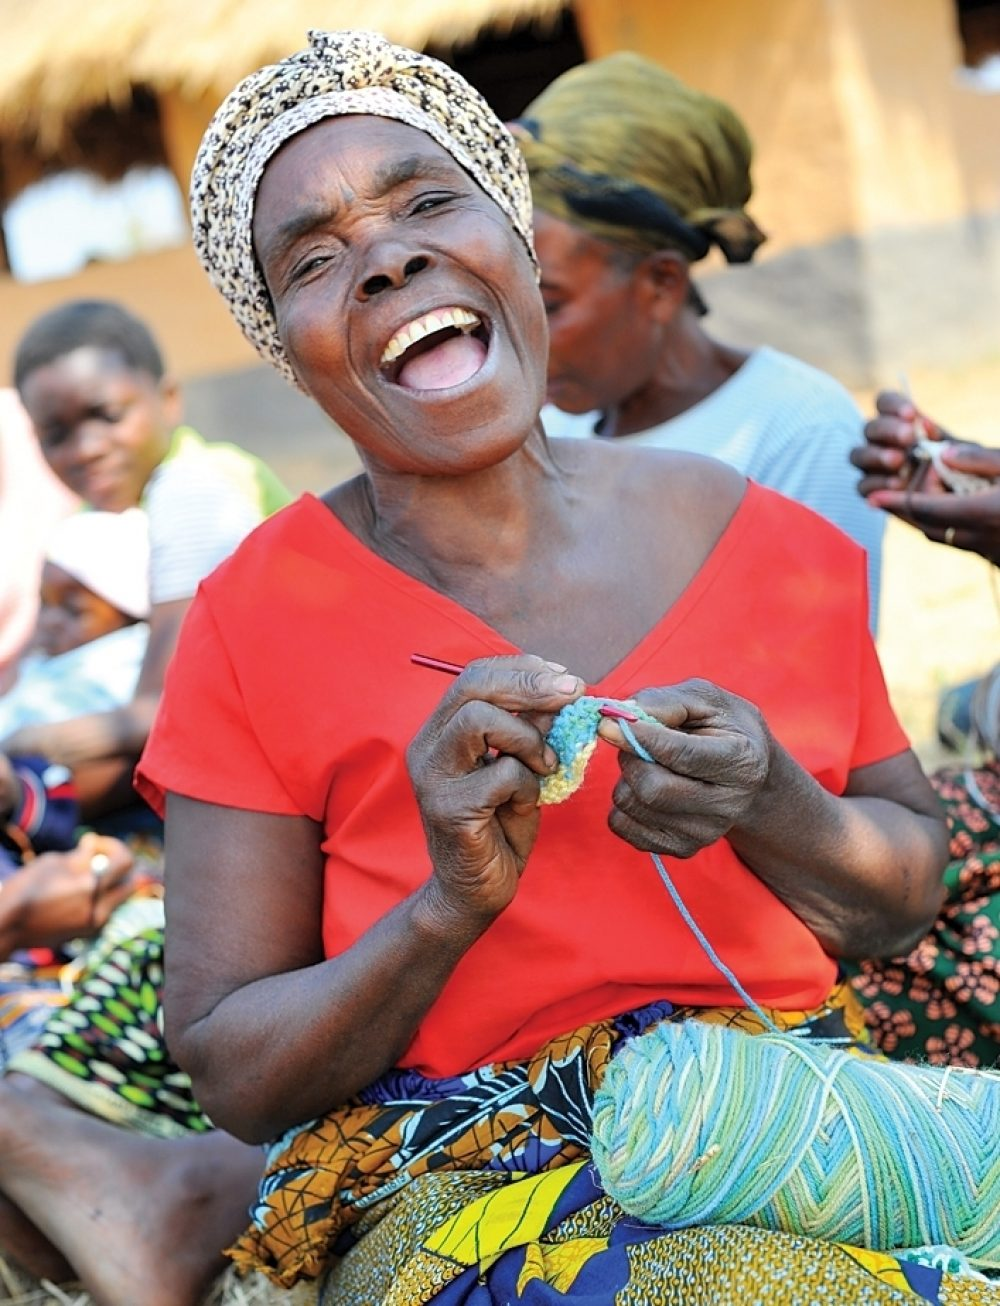 A member of the women's group crochets in Chishiko, Zambia.